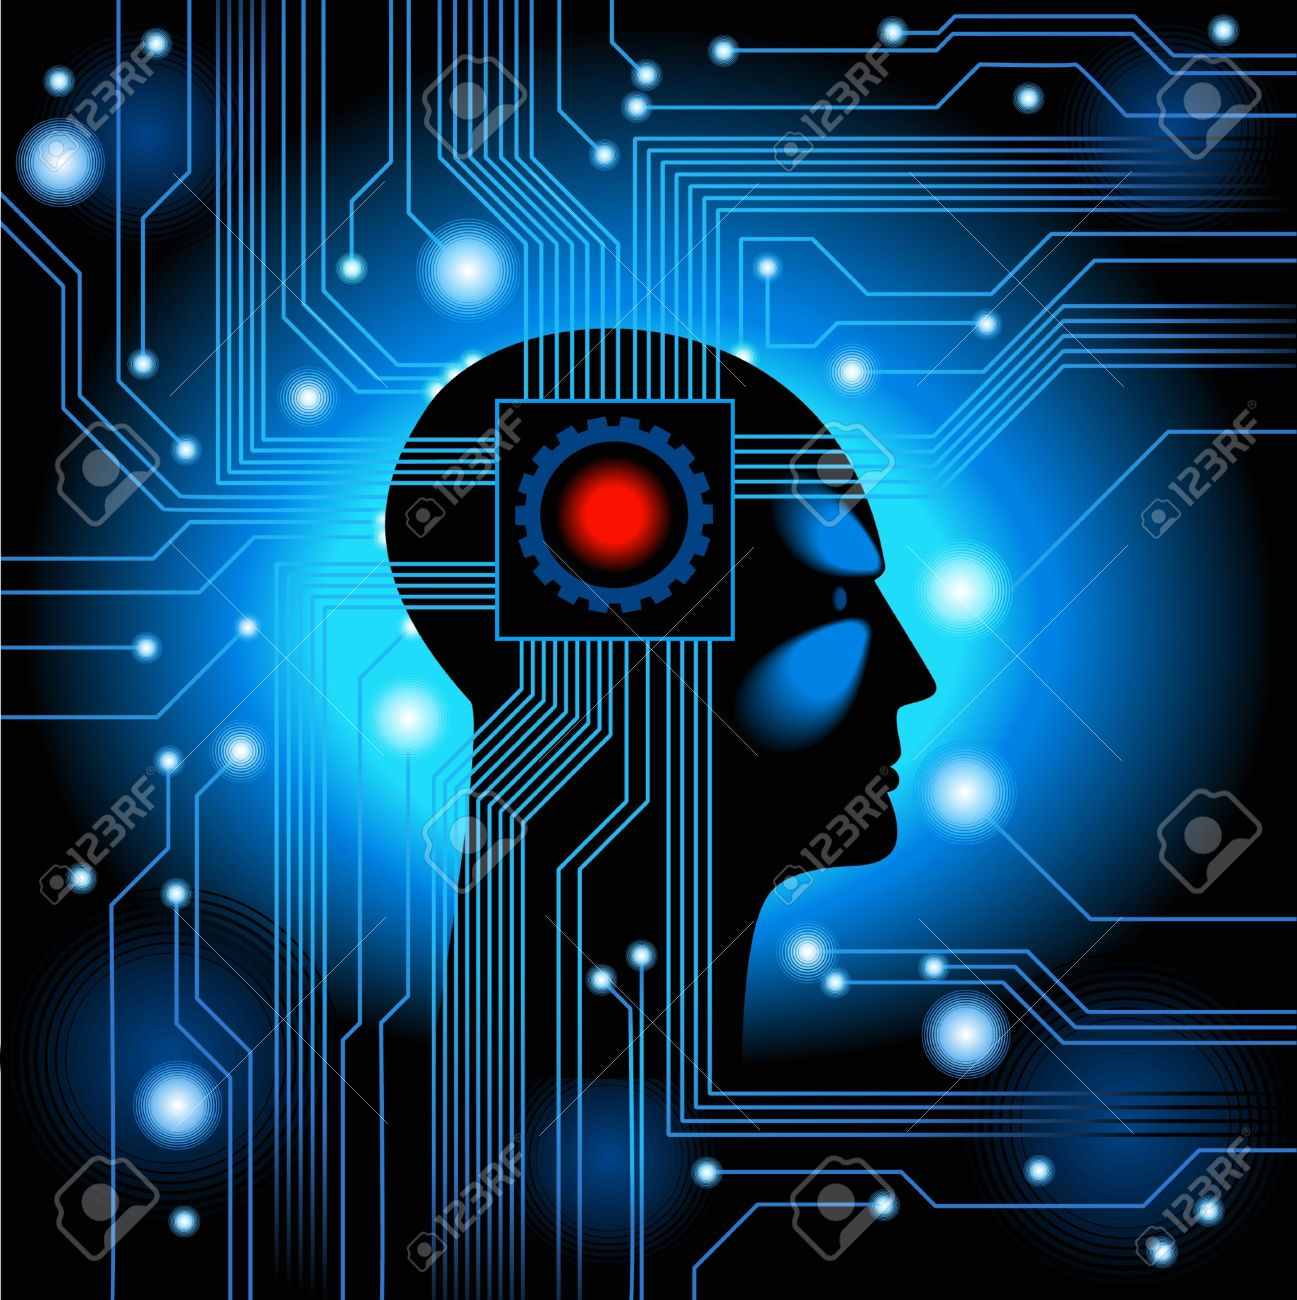 11763980-Human-Head-figure-the-concept-of-artificial-intelligence-Stock-Vector